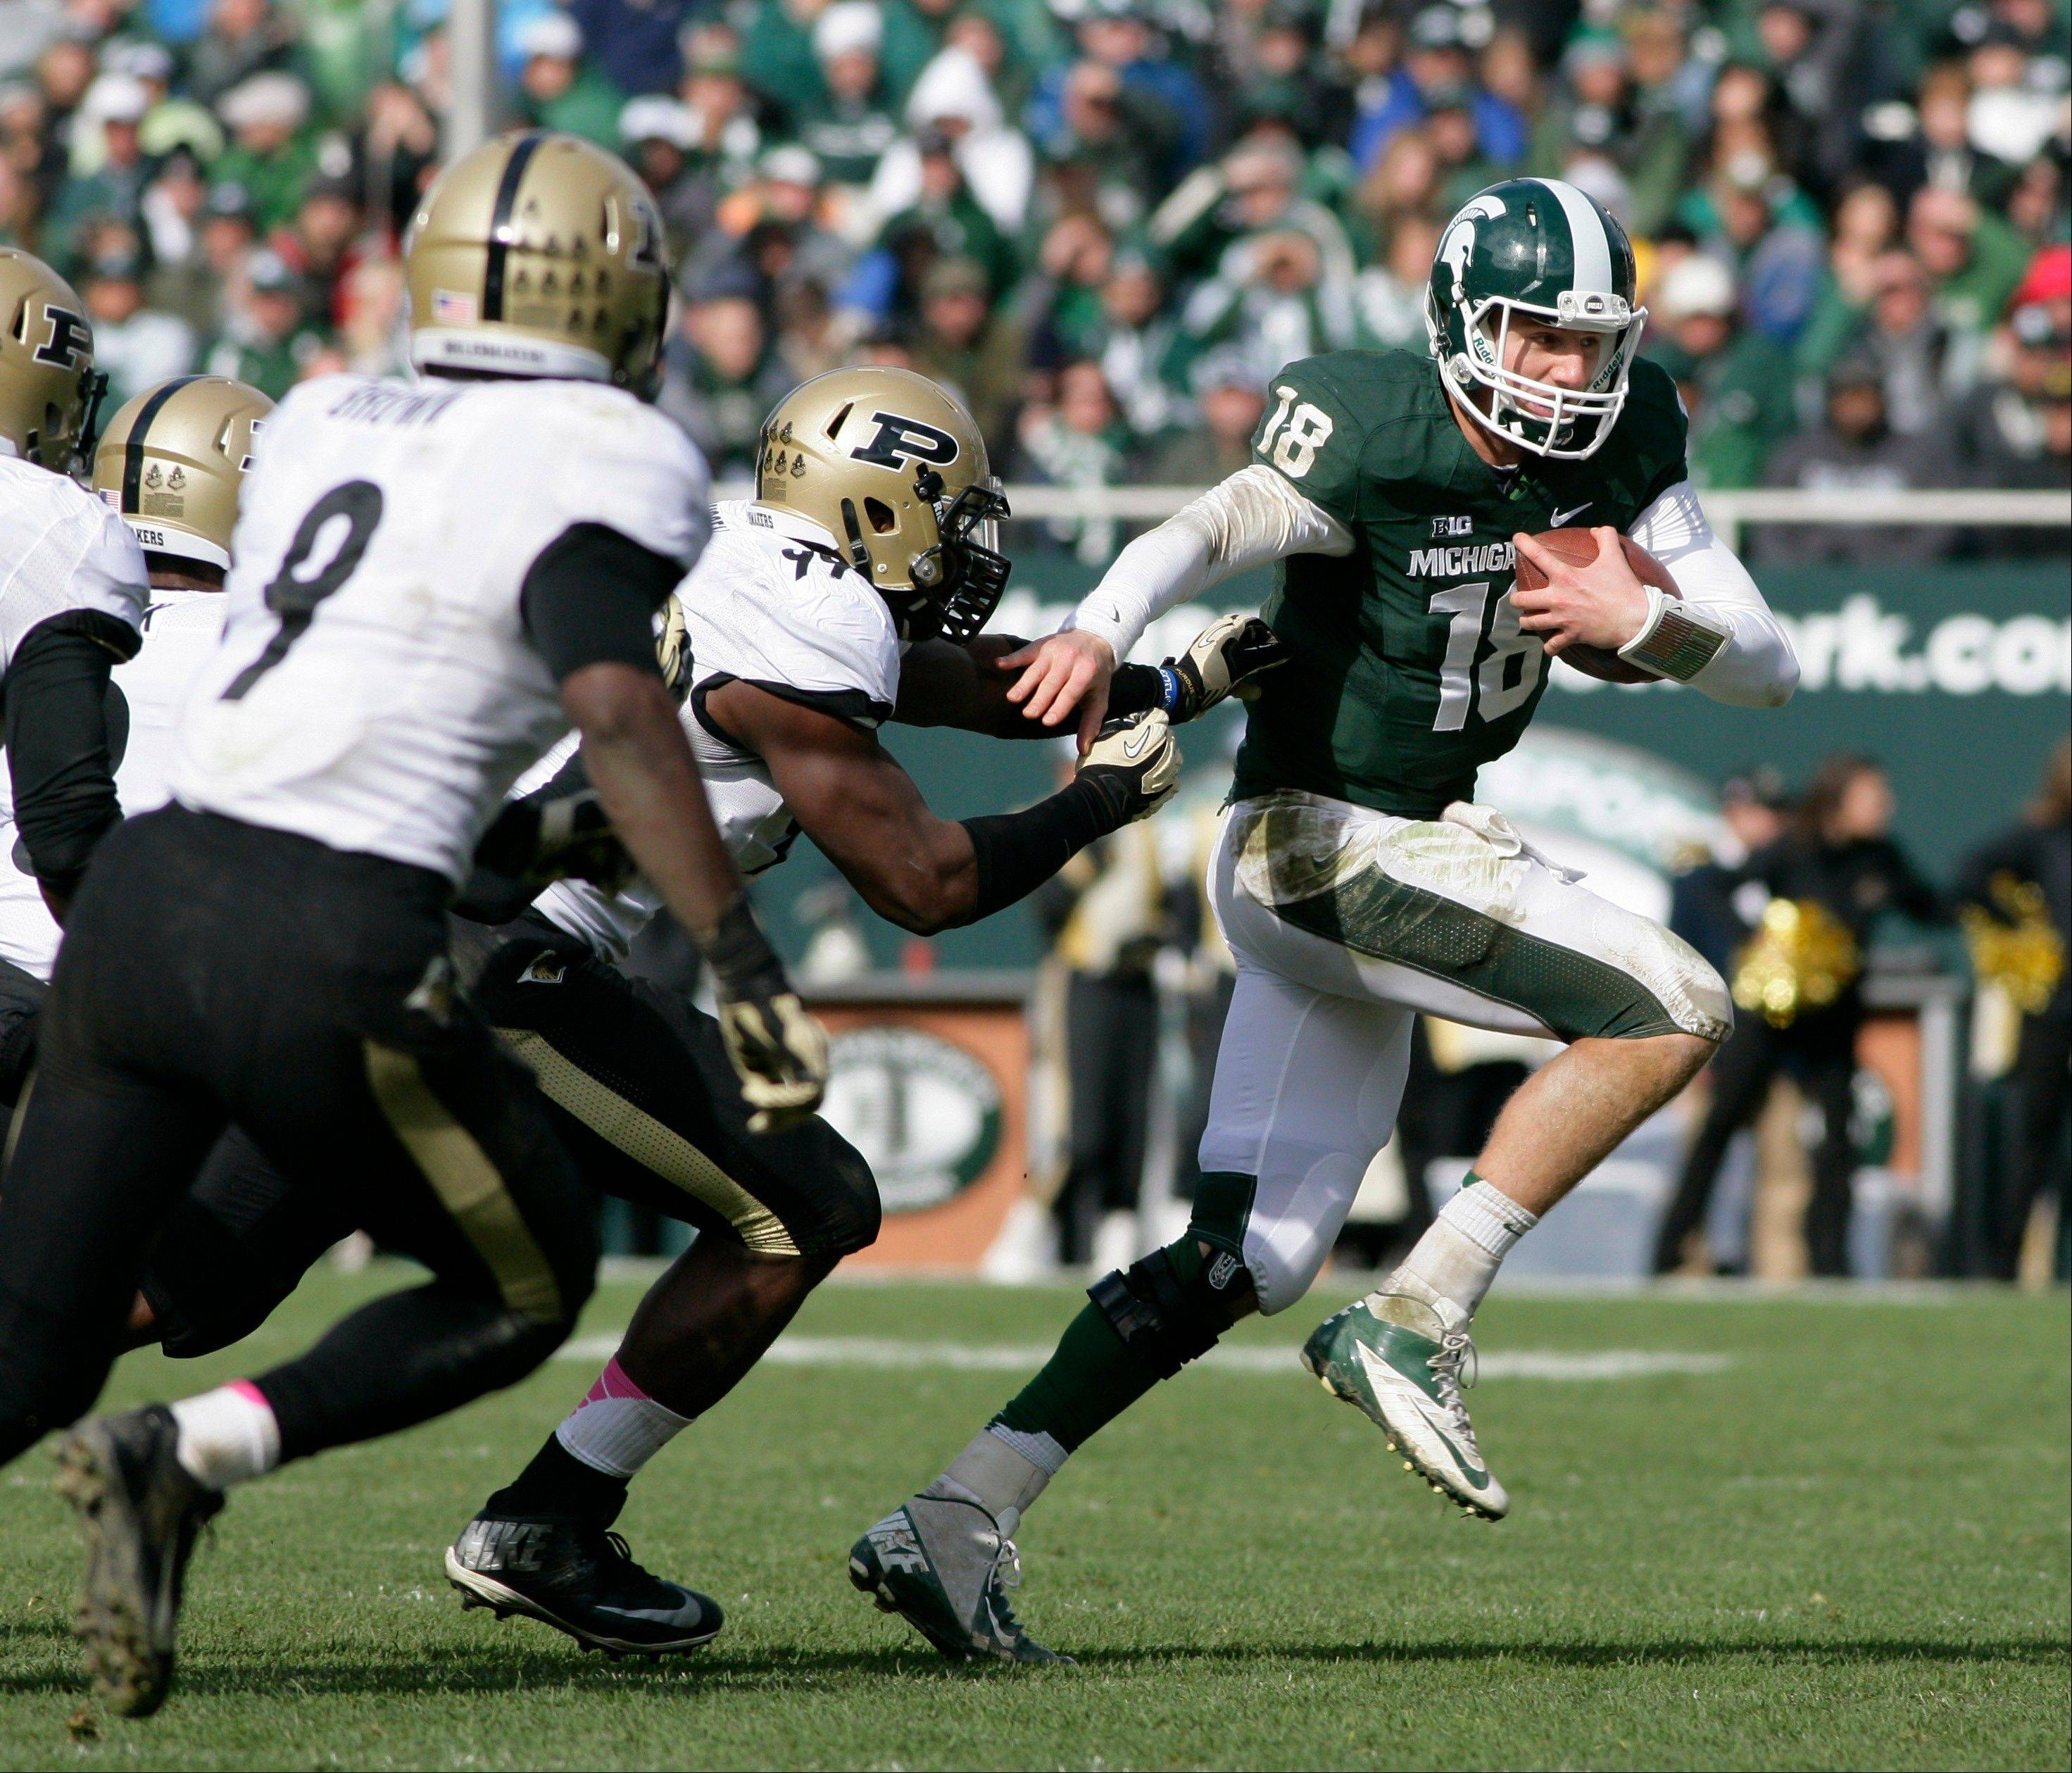 Michigan State quarterback Connor Cook scrambles against Purdue�s Ryan Russell, center, and Anthony Brown during the fourth quarter of the Oct. 19 game in East Lansing, Mich. Heading into the final month of regular season Michigan State is battling for supremacy in the Big Ten�s Legends Division with Michigan and Nebraska.